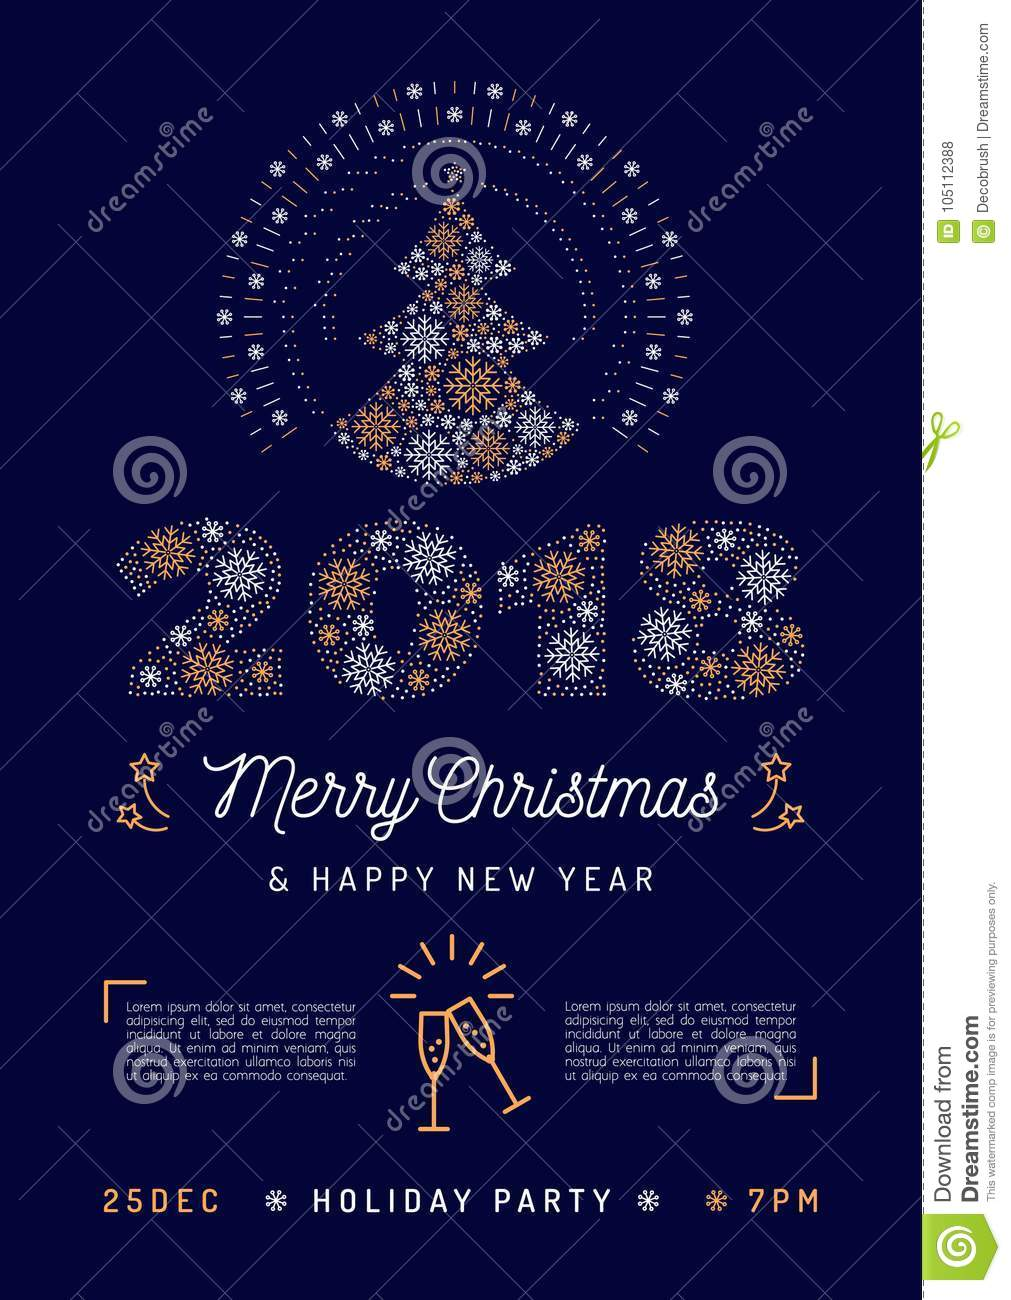 christmas party flyer holiday 2018 printable invitation christmas and happy new year greeting poster